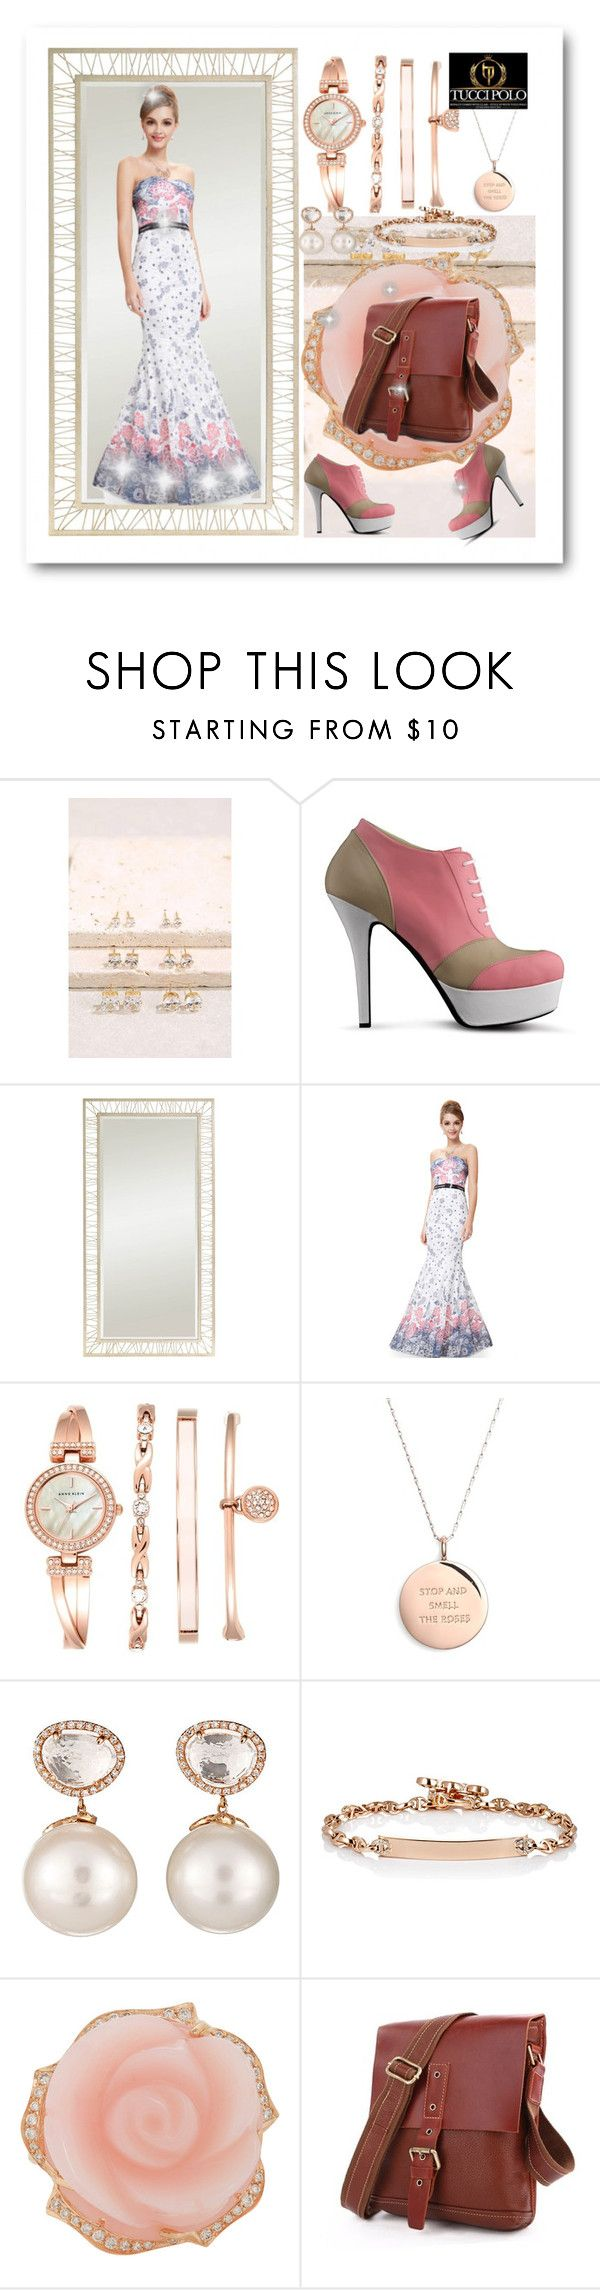 """Untitled #558"" by ane-twist ❤ liked on Polyvore featuring Stanley Furniture, WithChic, Anne Klein, Kate Spade, Samira 13, Hoorsenbuhs, Irene Neuwirth, vintage and sthash"